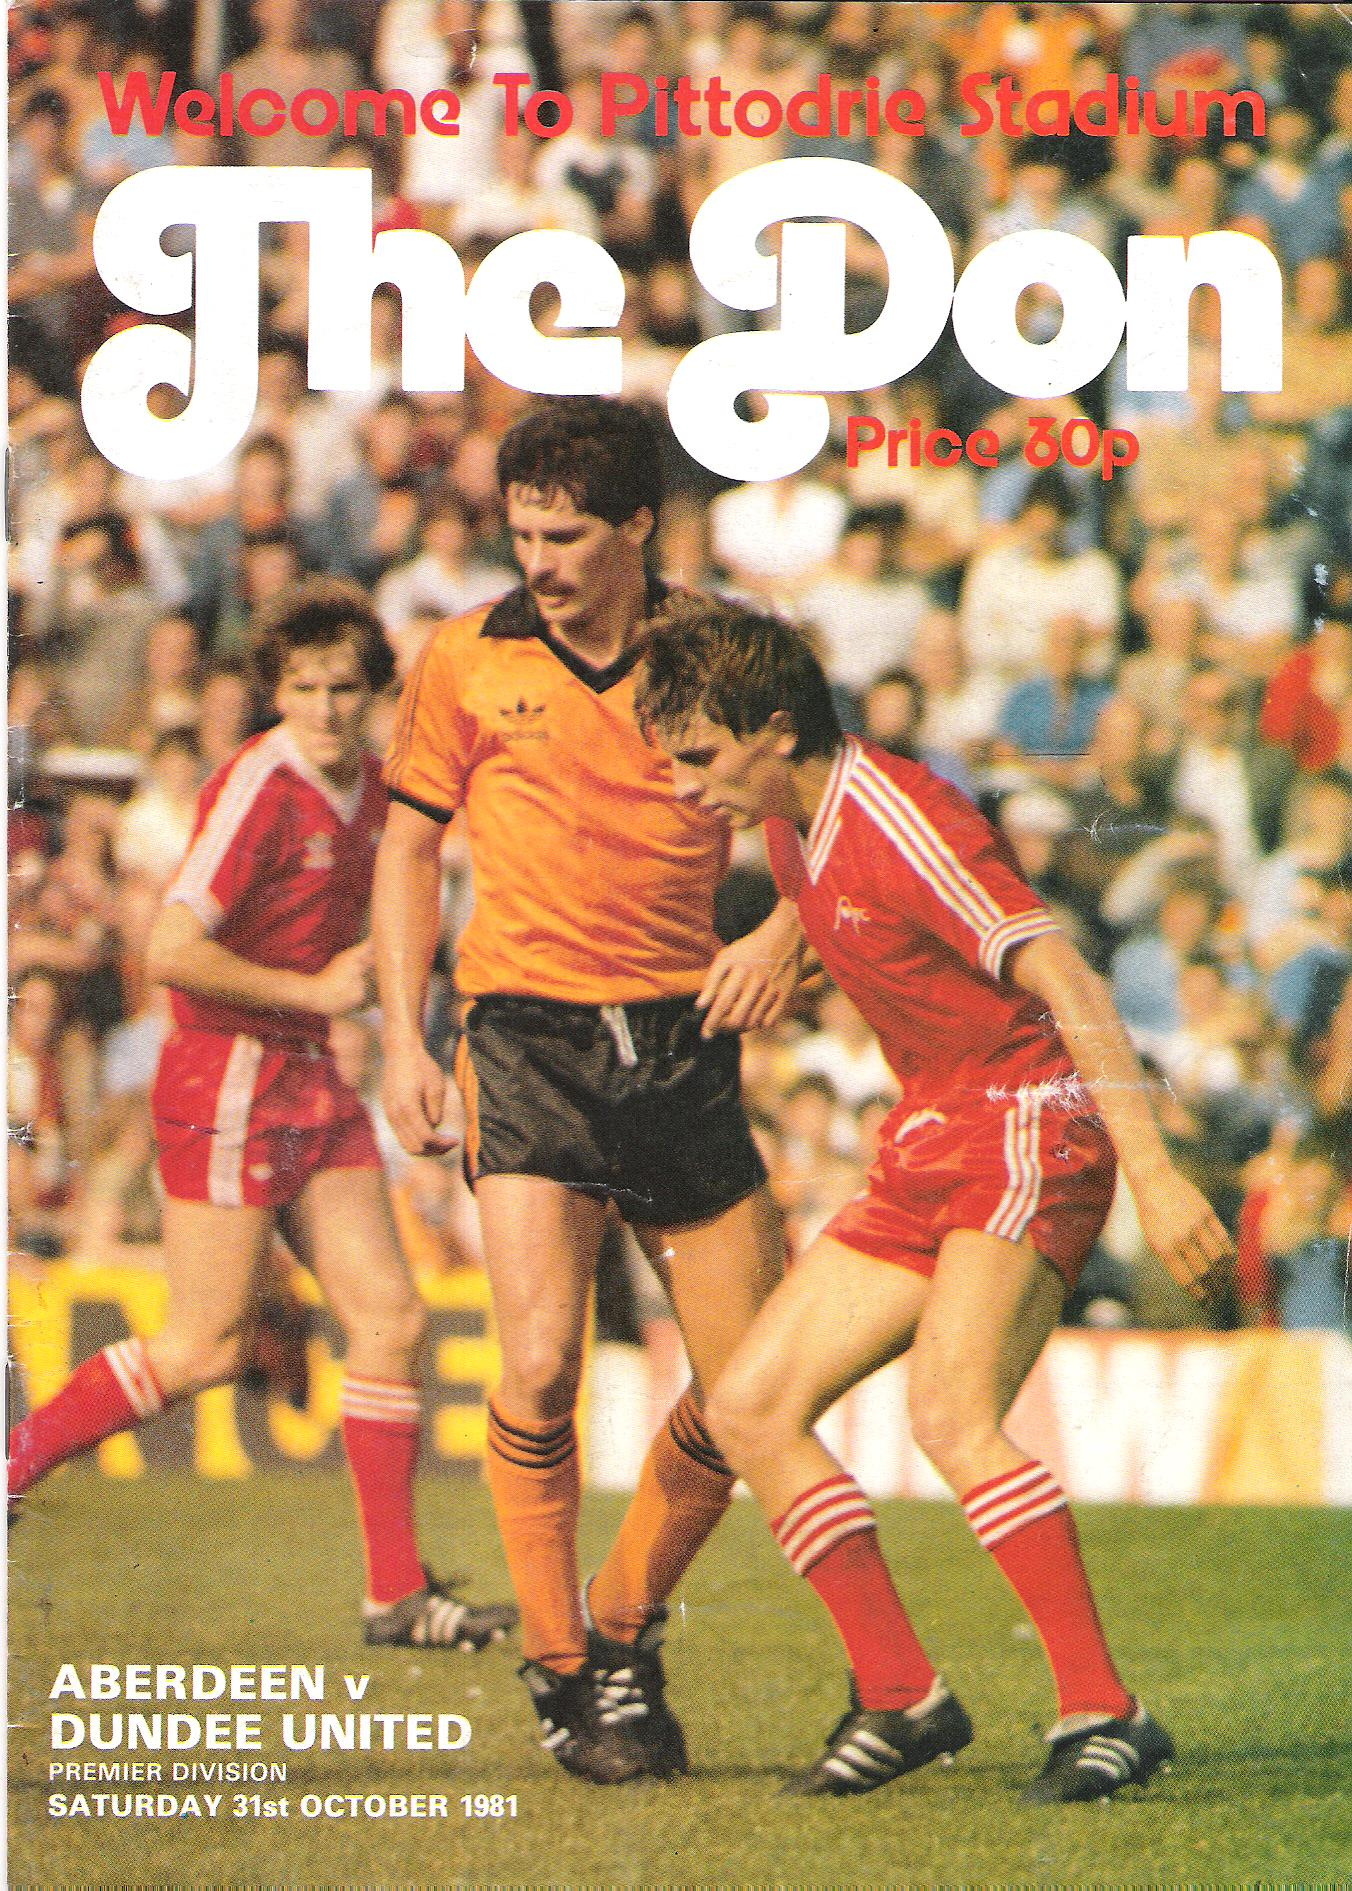 The Don. Premier Division: Aberdeen v.  Dundee United. Saturday 31st October 1981.